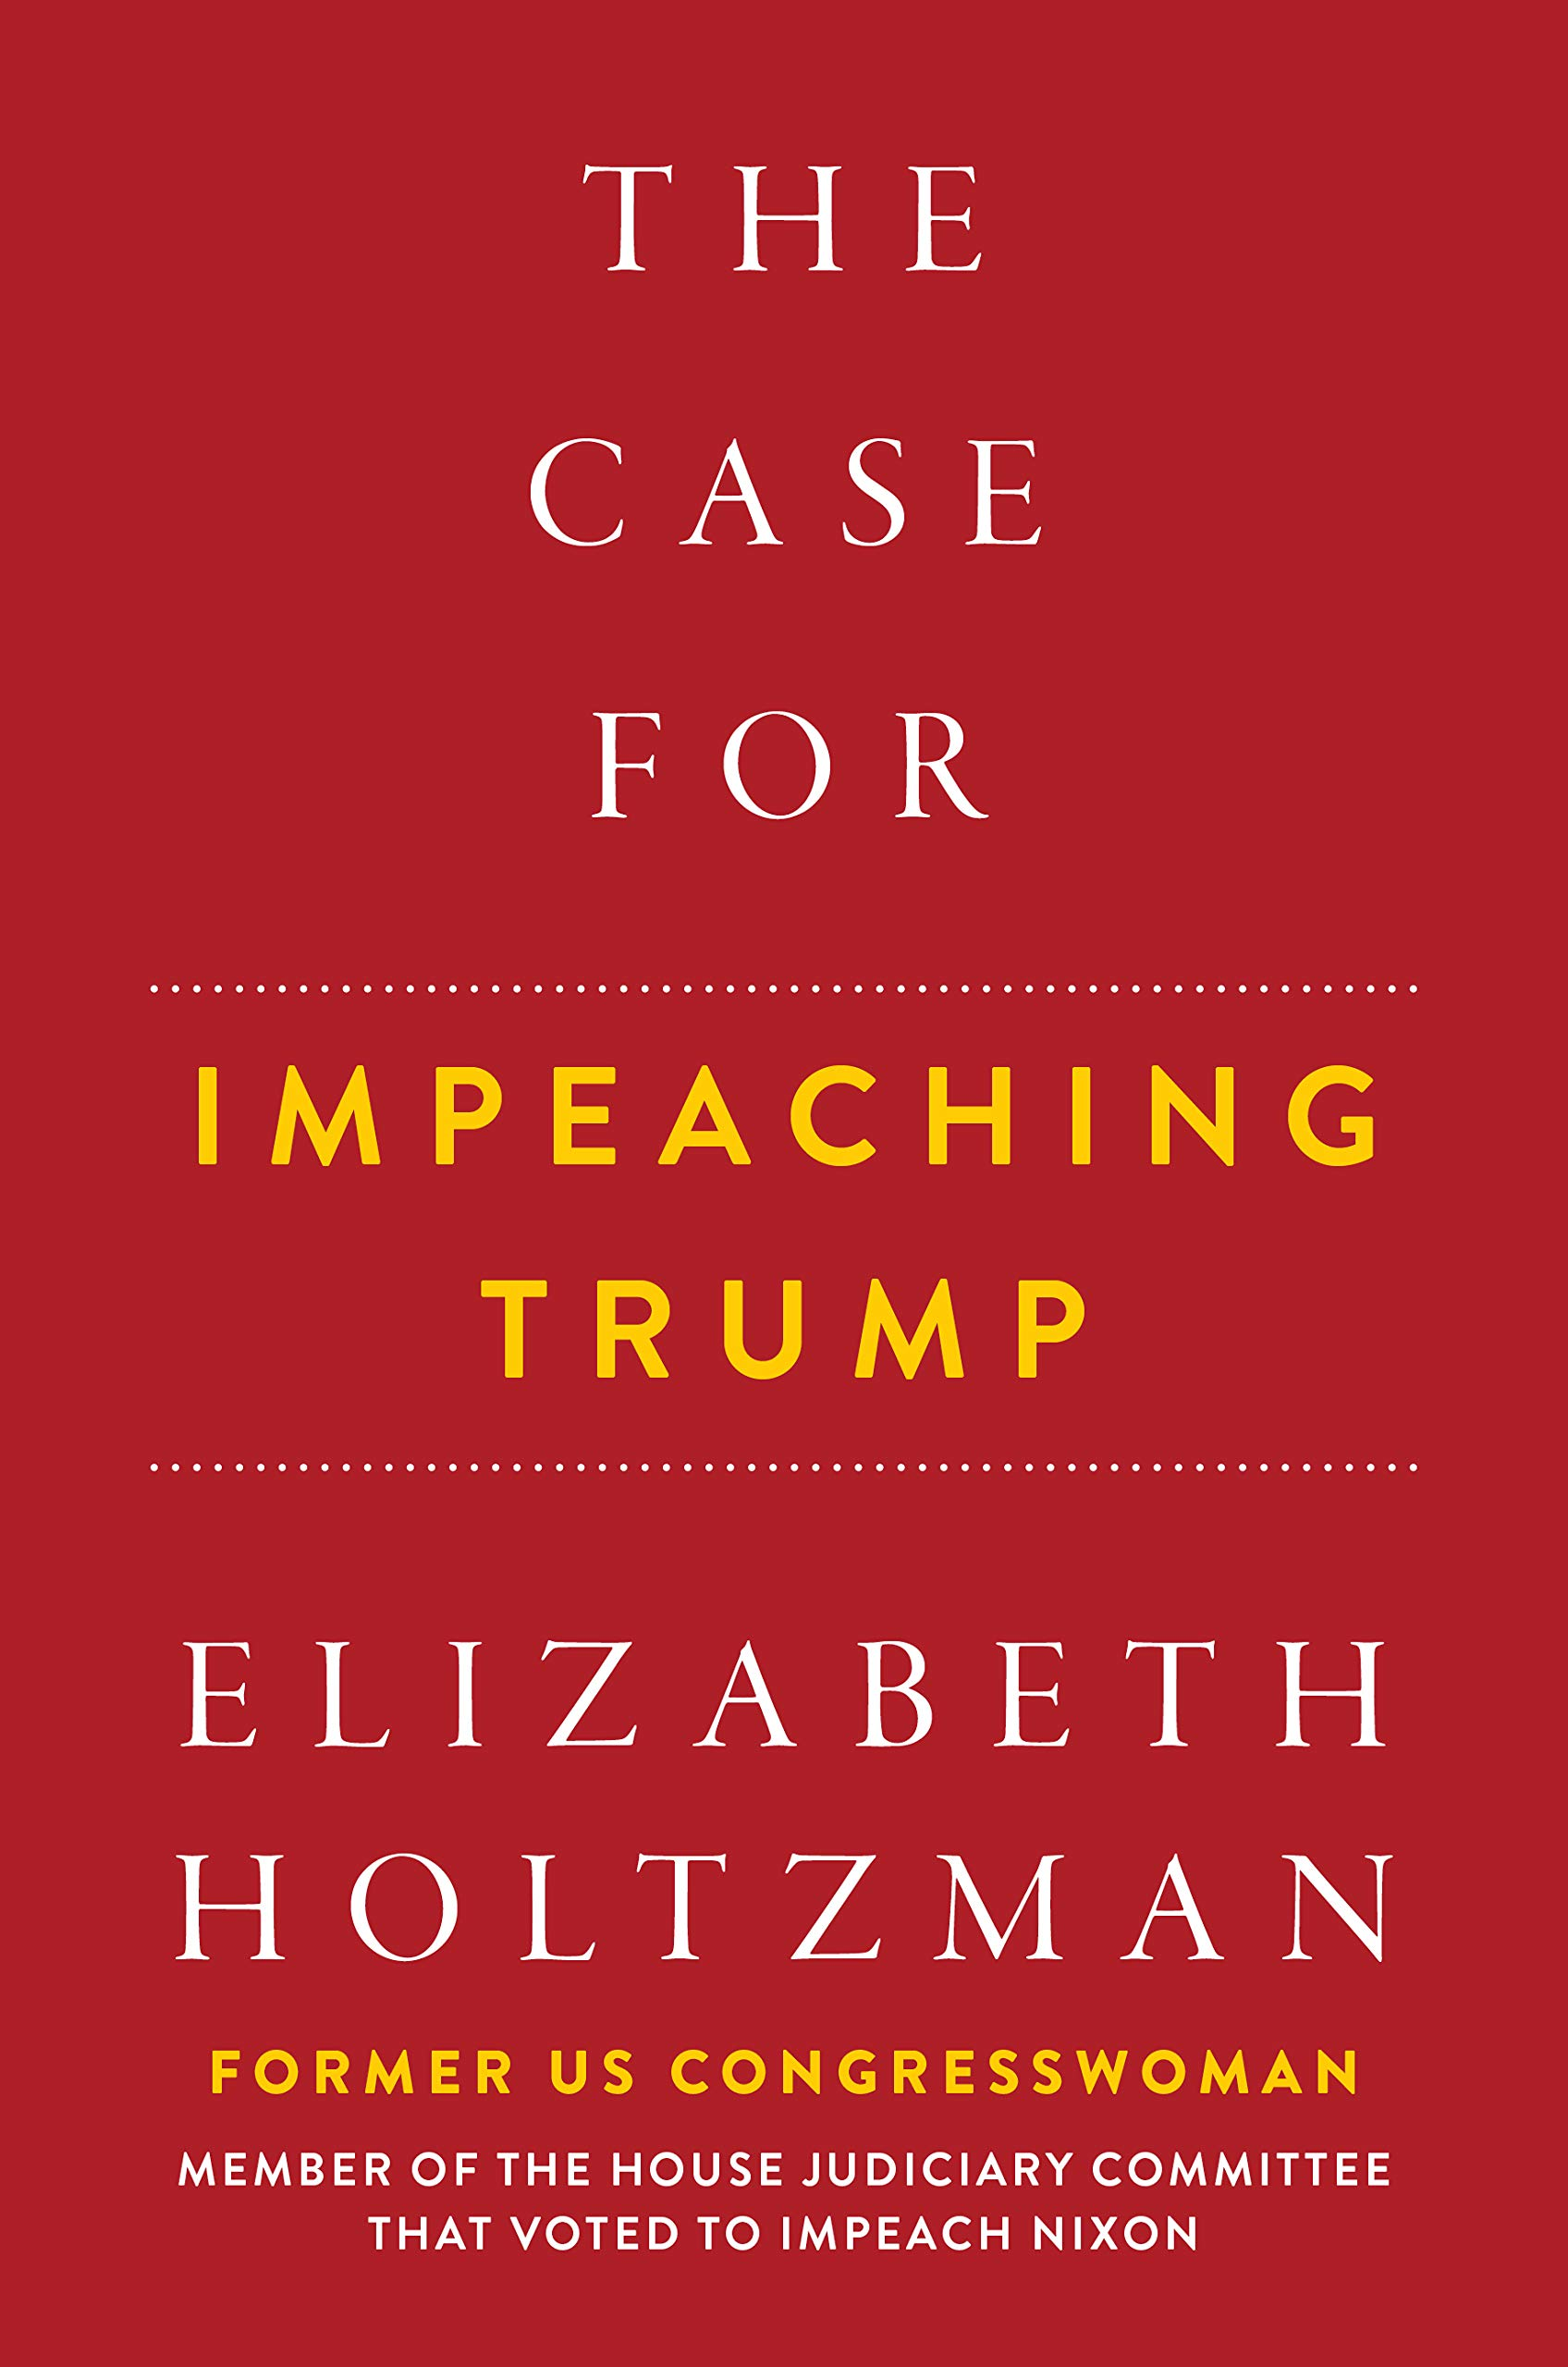 The Case For Impeaching Trump Hardcover – November 12, 2018 Elizabeth Holtzman Hot Books 1510744770 GENERAL